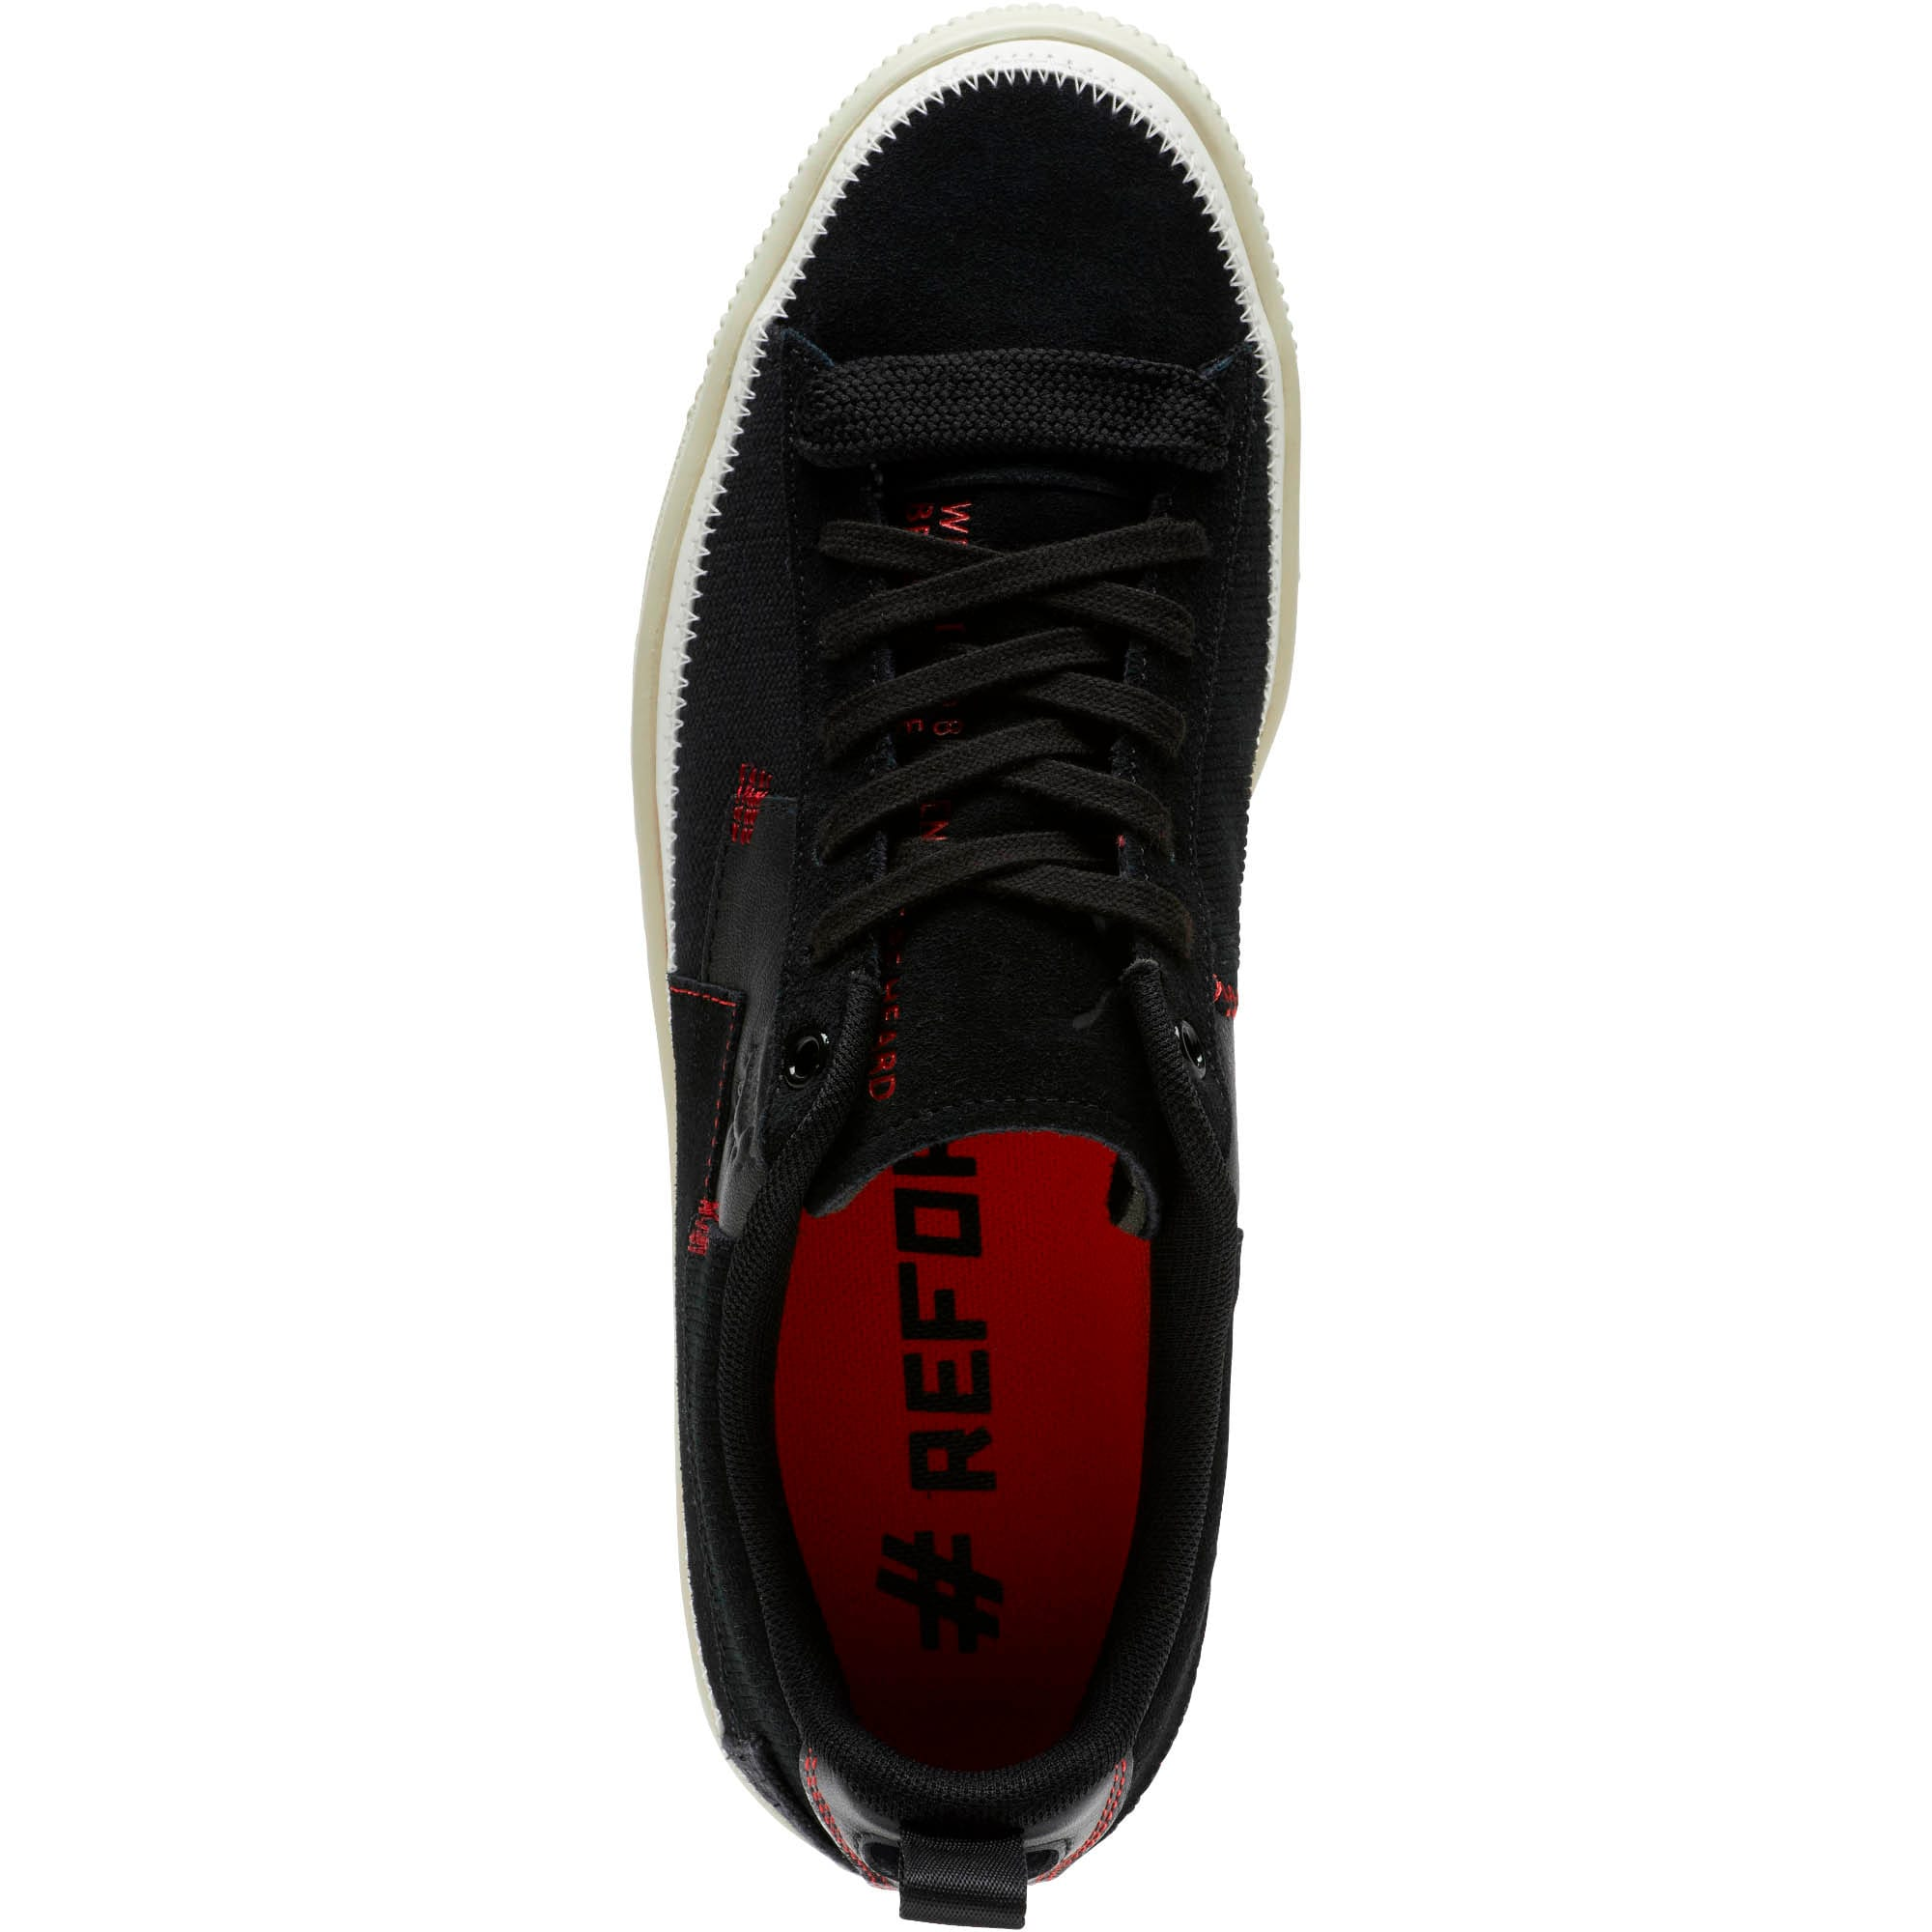 Thumbnail 5 of Clyde #REFORM Sneakers, Black-Whisper White- Red, medium